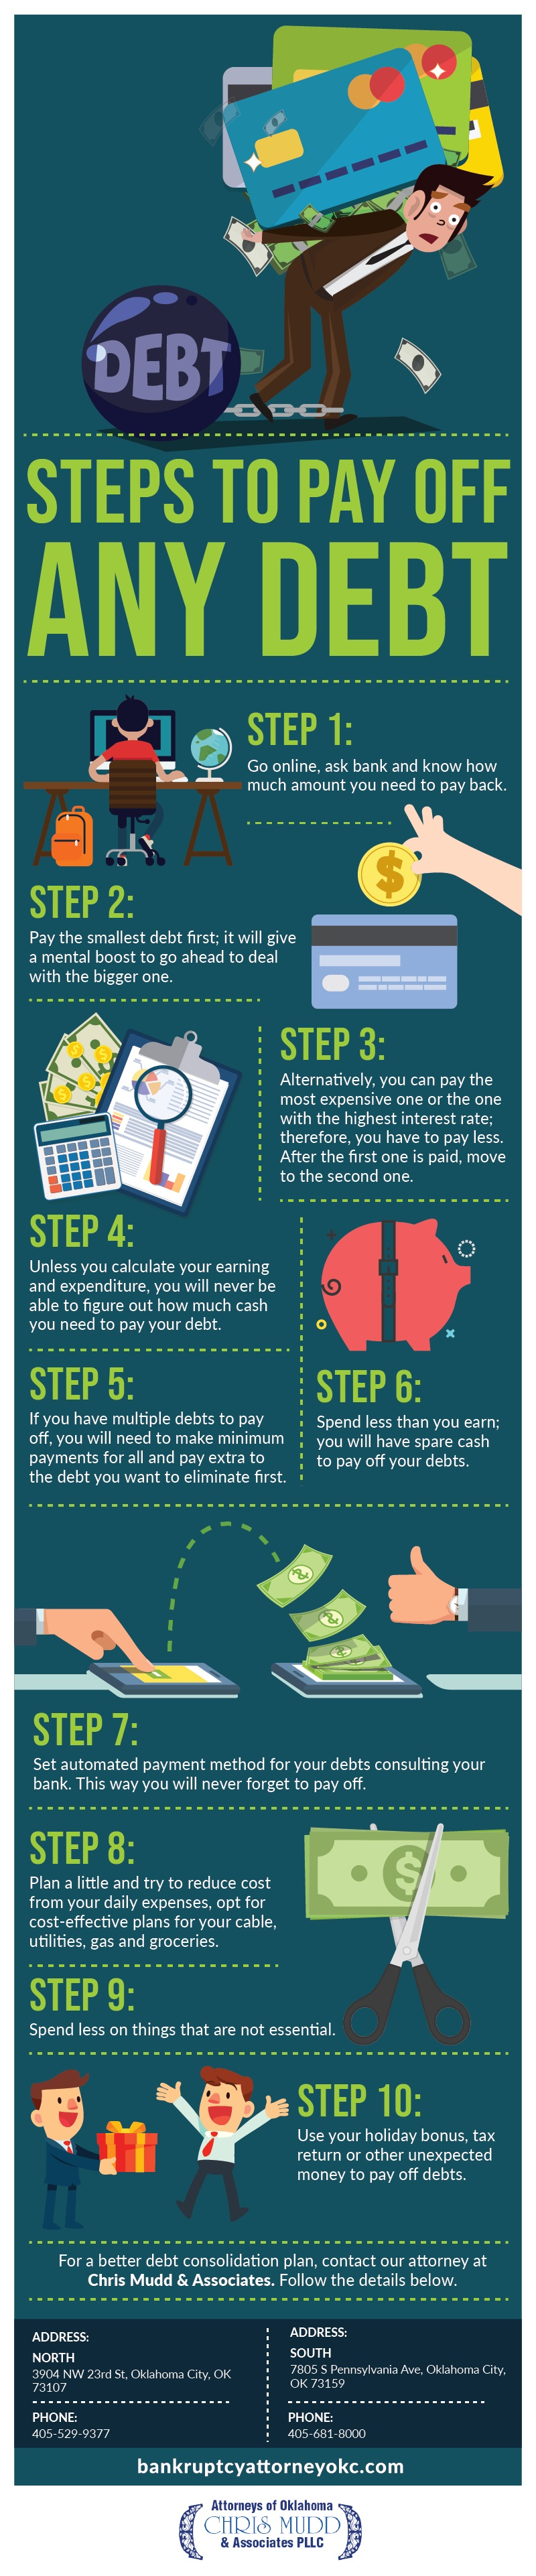 Steps To Pay Off Any debt